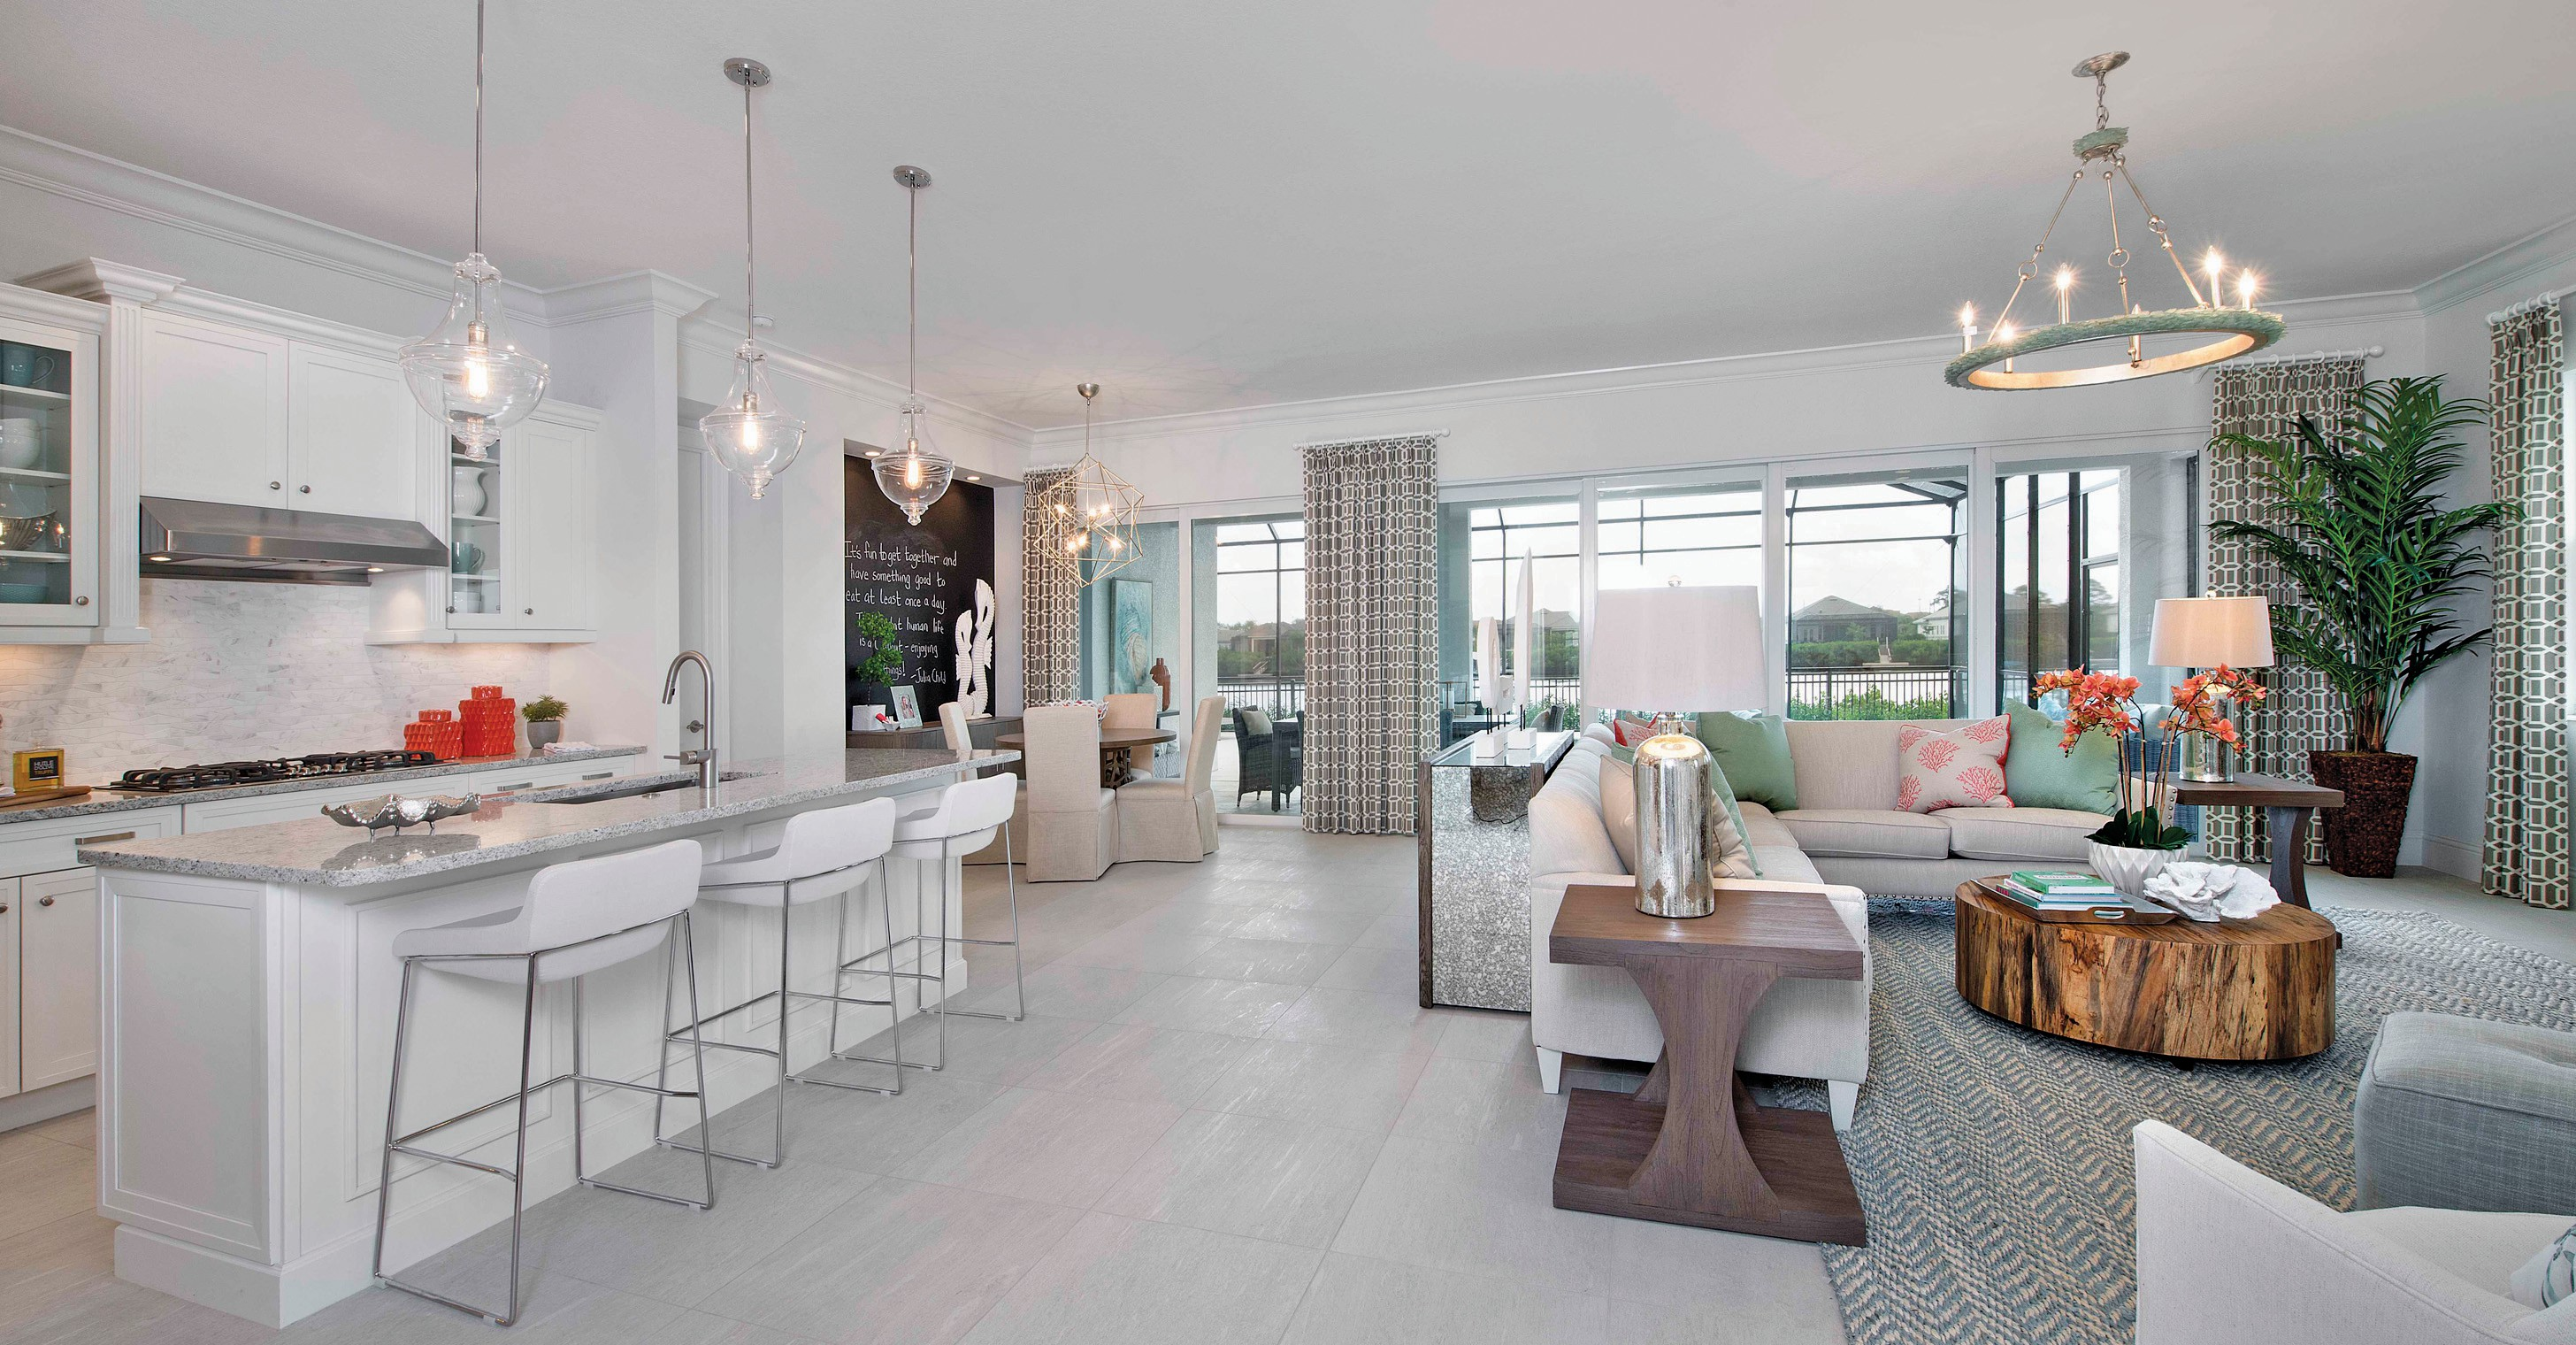 LBIA Parade of Homes displays an array of Stock s beautifully